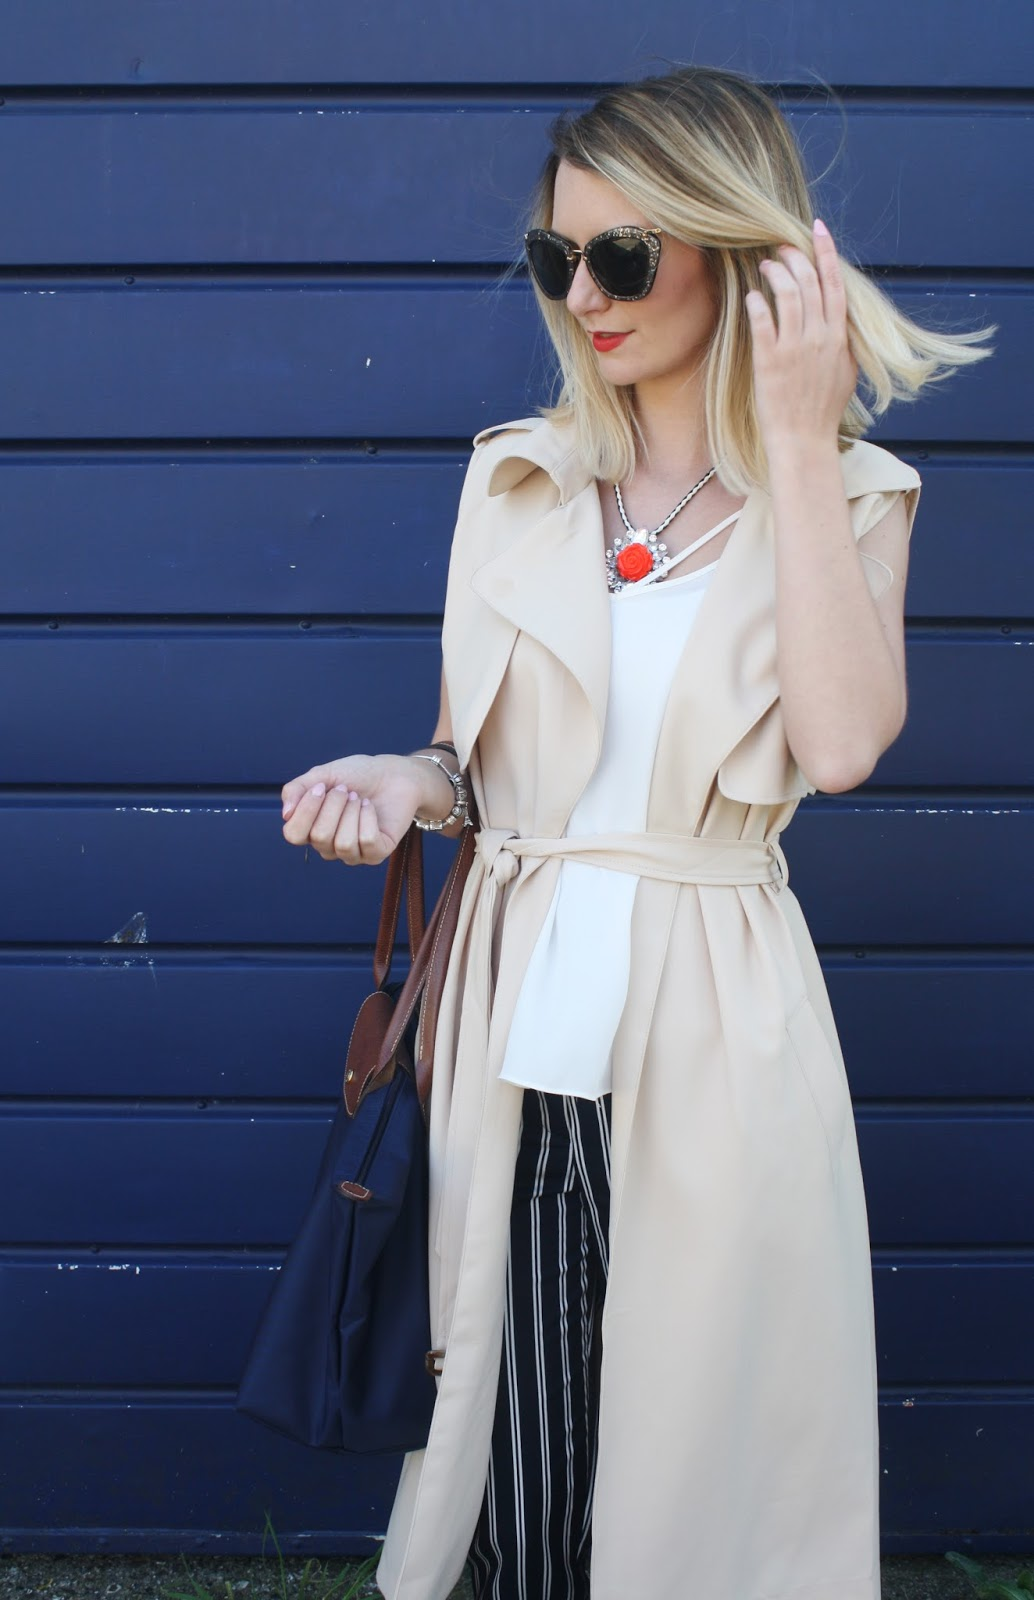 Pinstripe navy trousers and camel trench coat